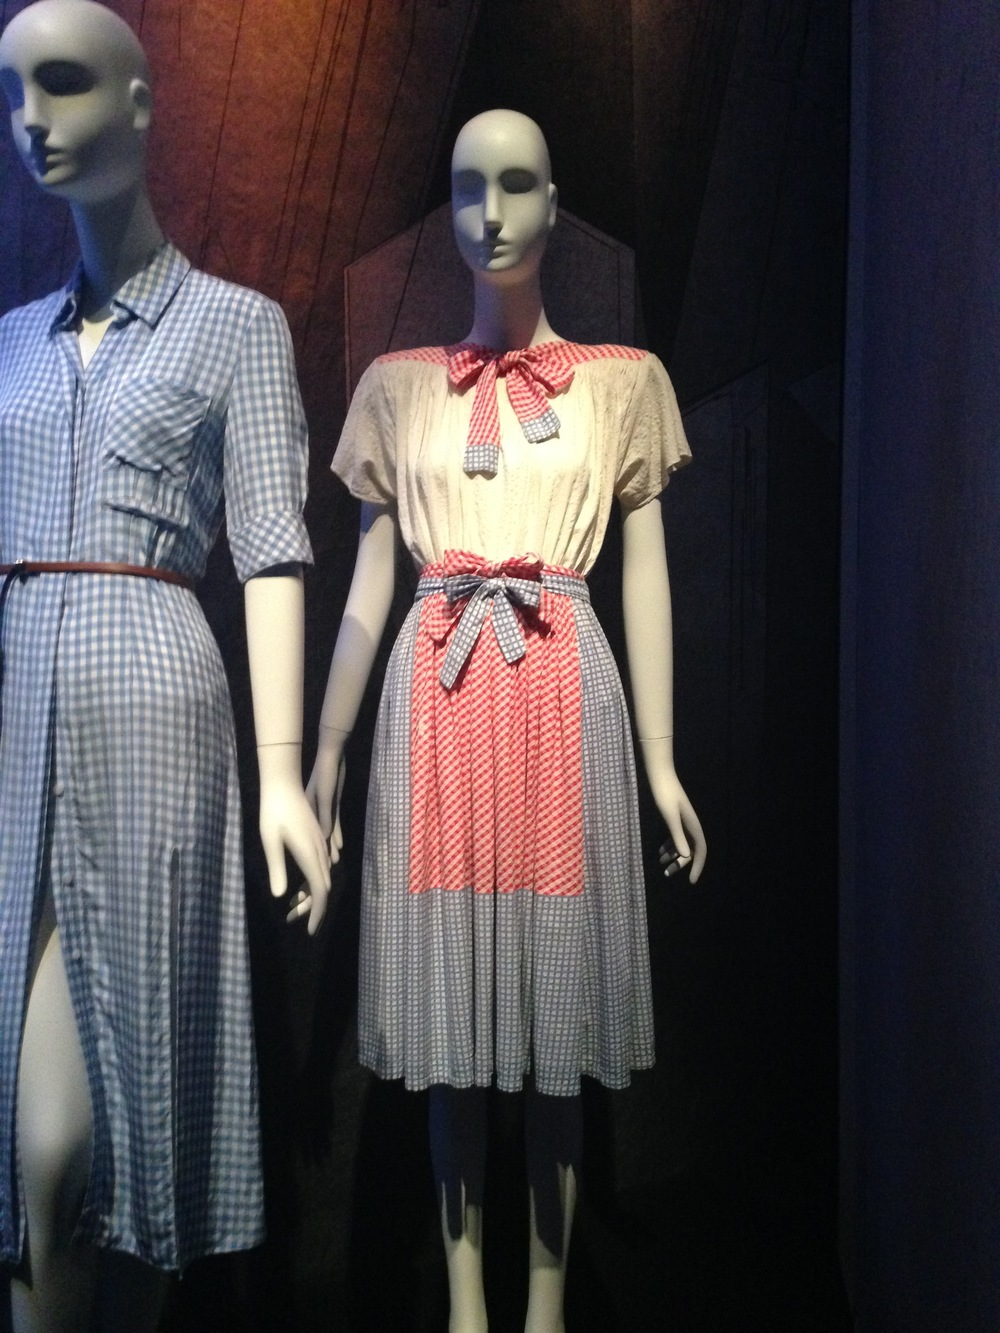 Gingham dresses by Gilbert Adrian for 1942 film 'Wizard of Oz'. The dress on the right of course for Dorothy.